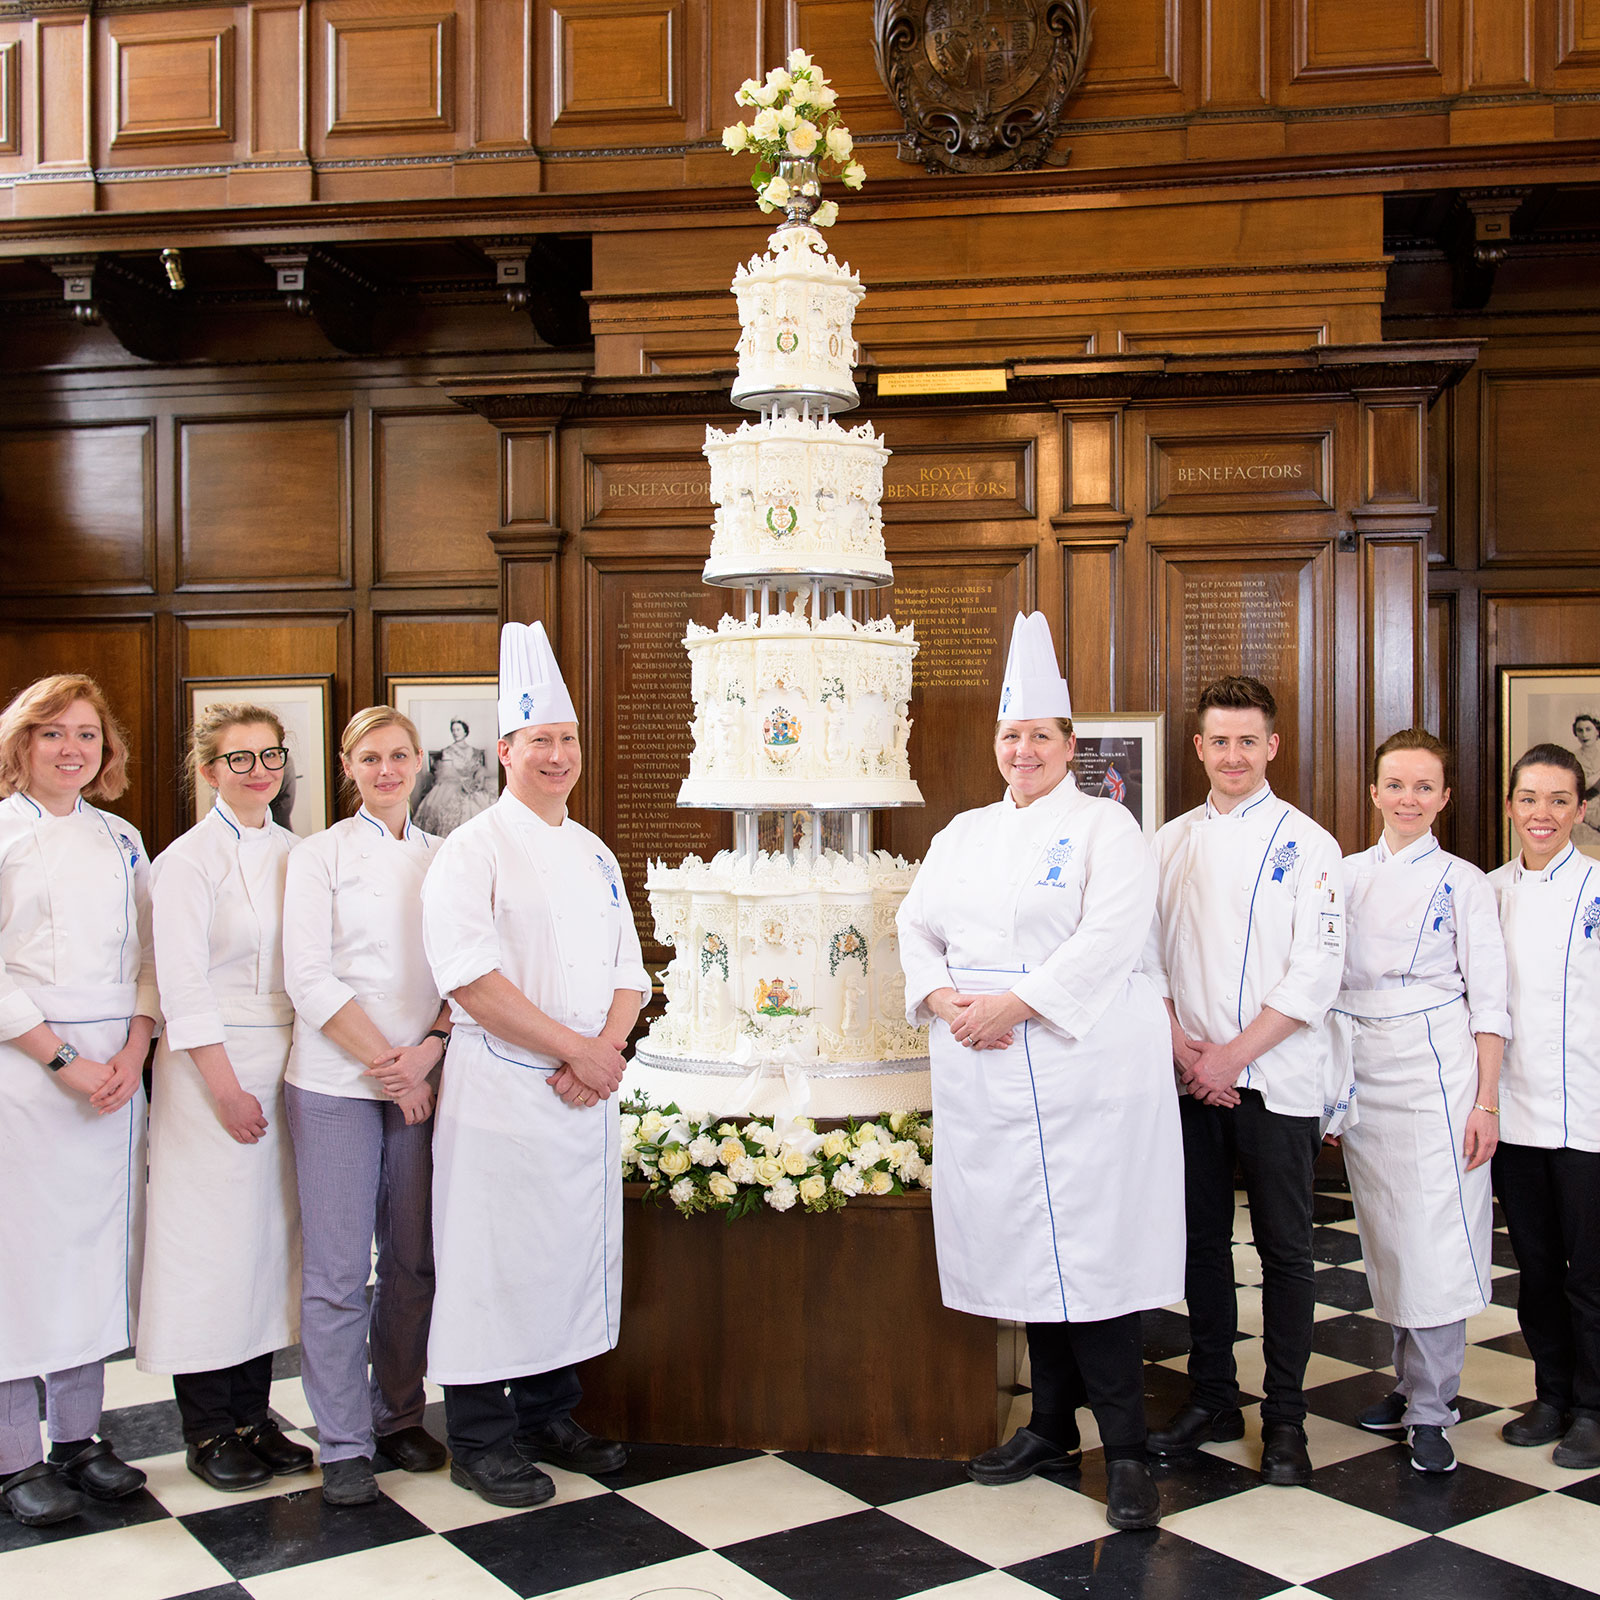 queen elizabeth wedding cake recreated